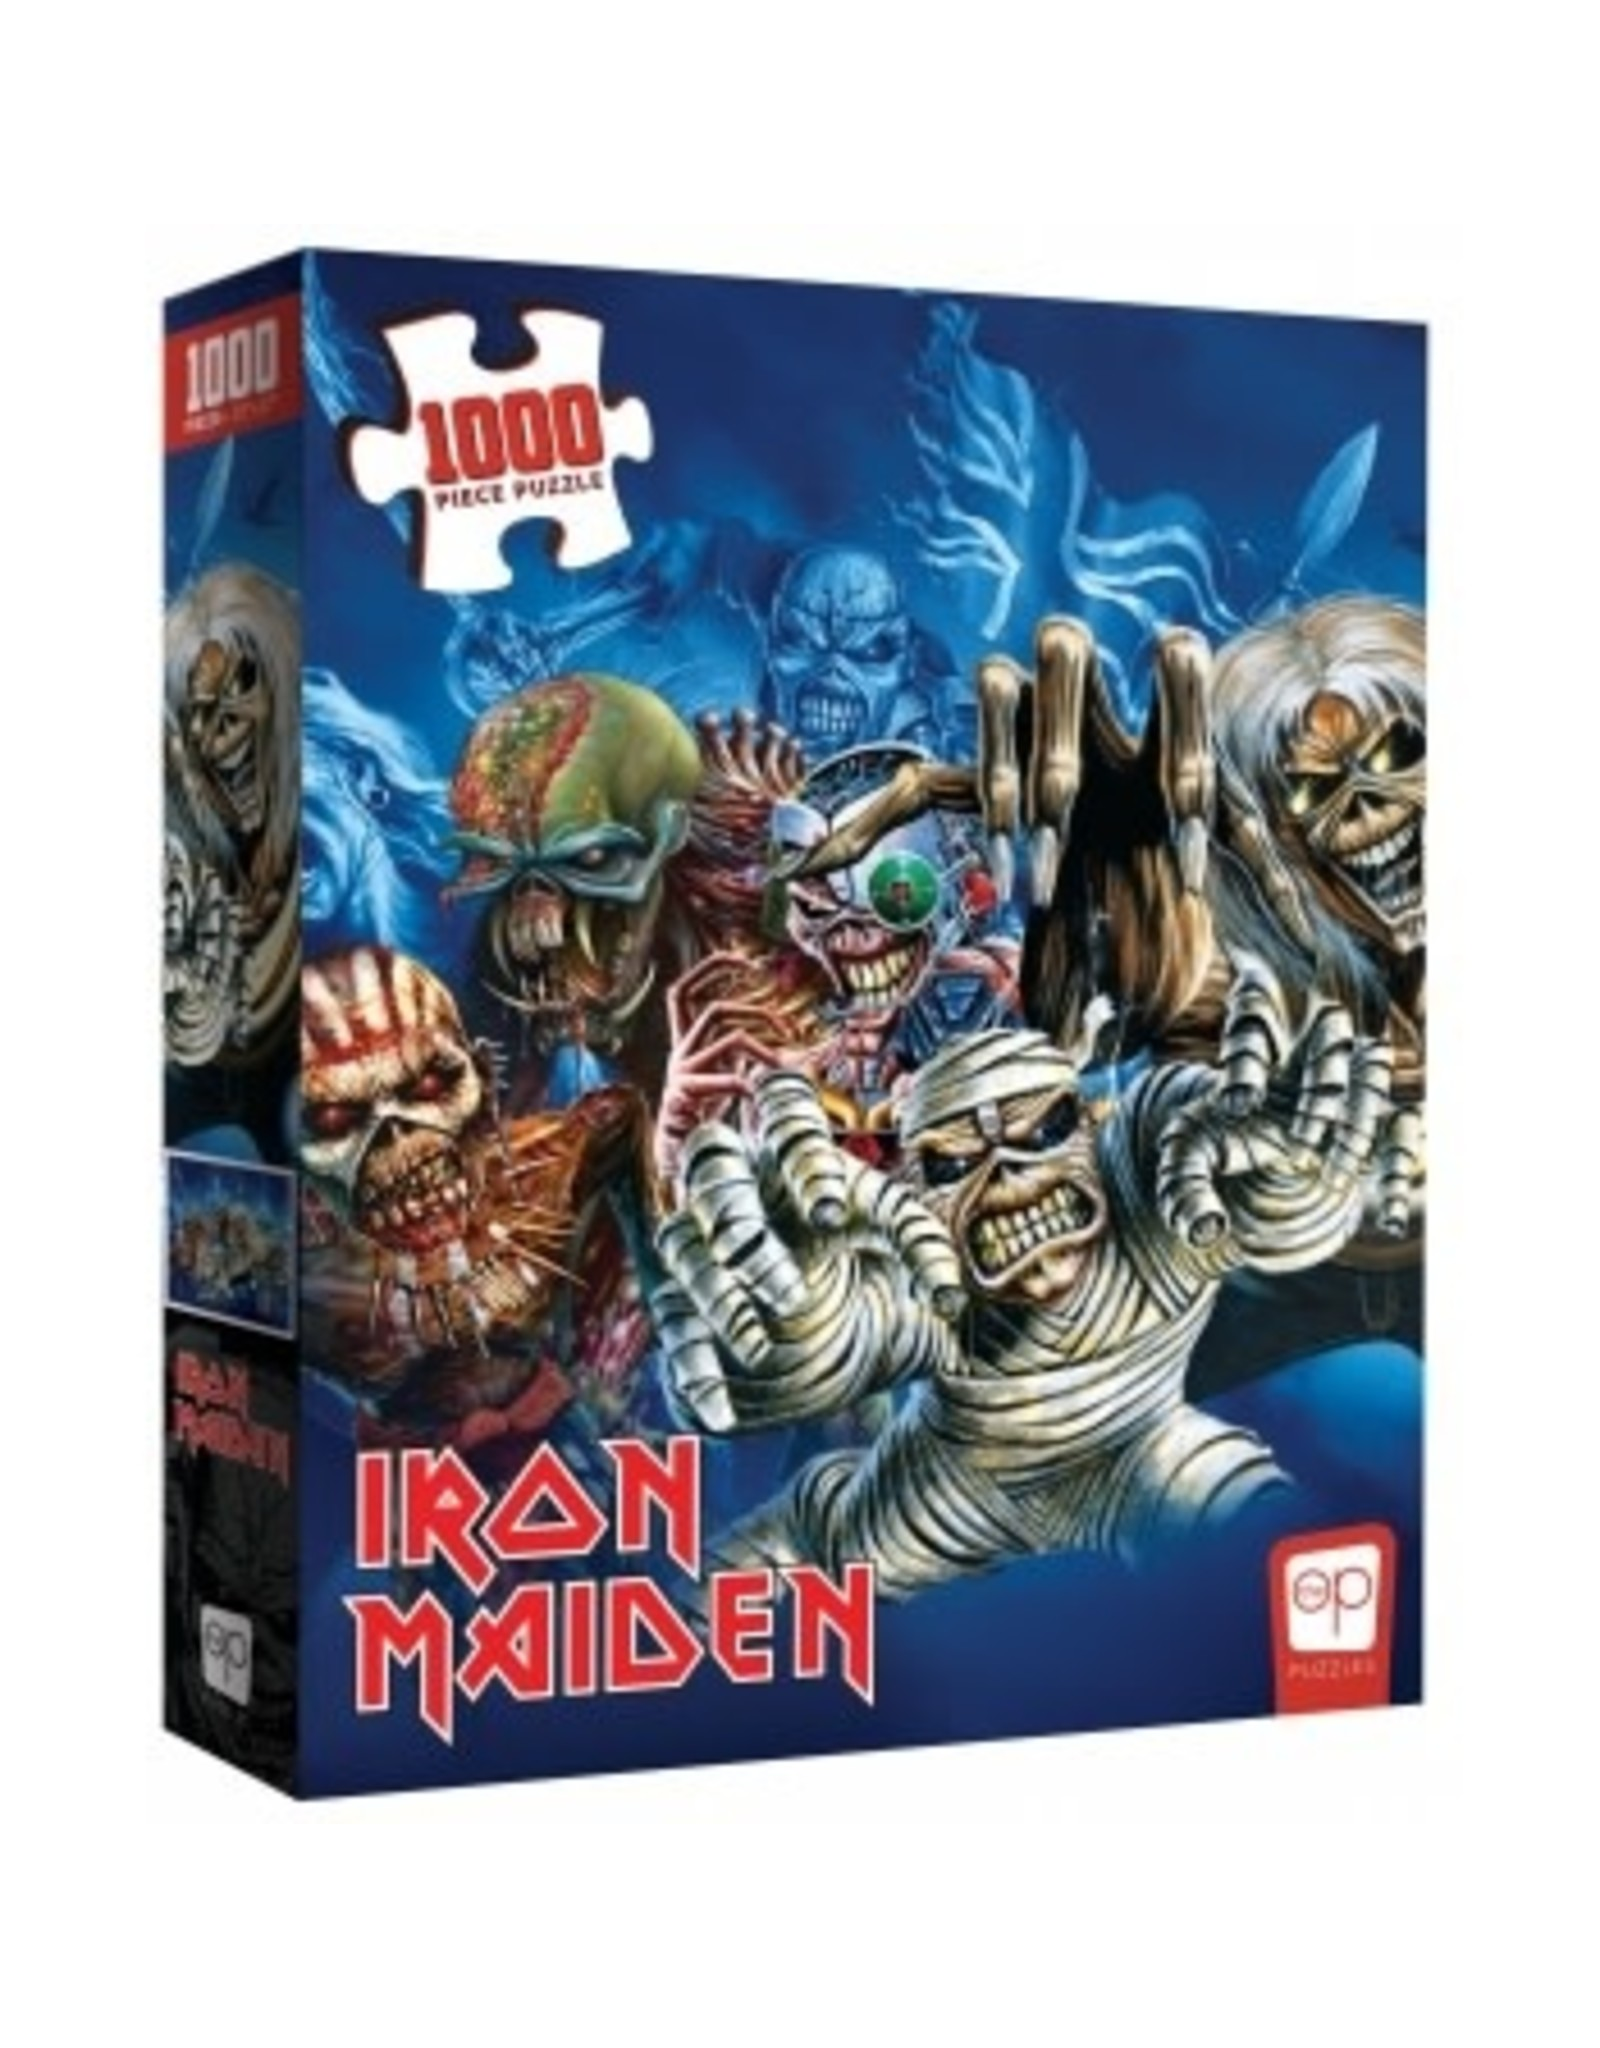 USAopoly IRON MAIDEN Puzzle 1000P - The Faces of Eddie